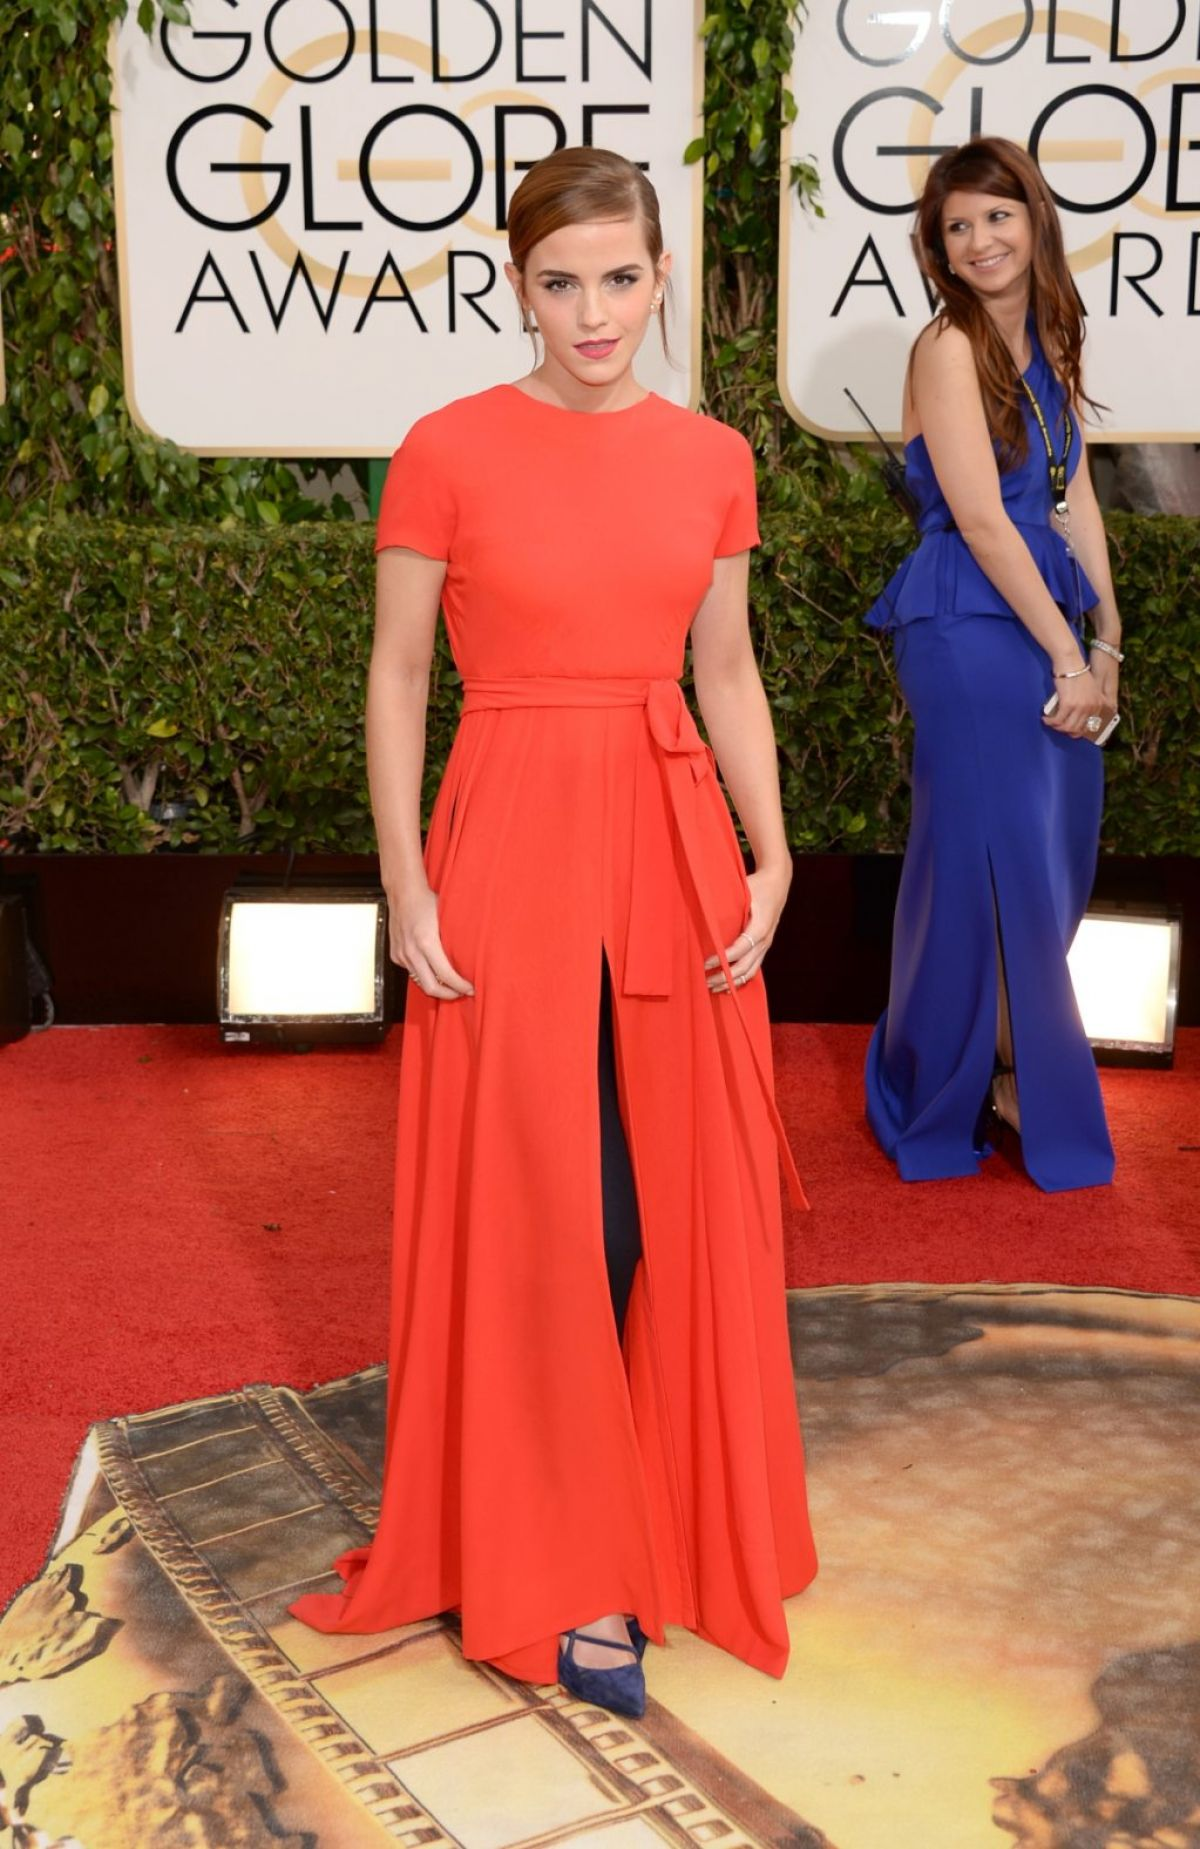 EMMA WATSON at 71st Annual Golden Globe Awards